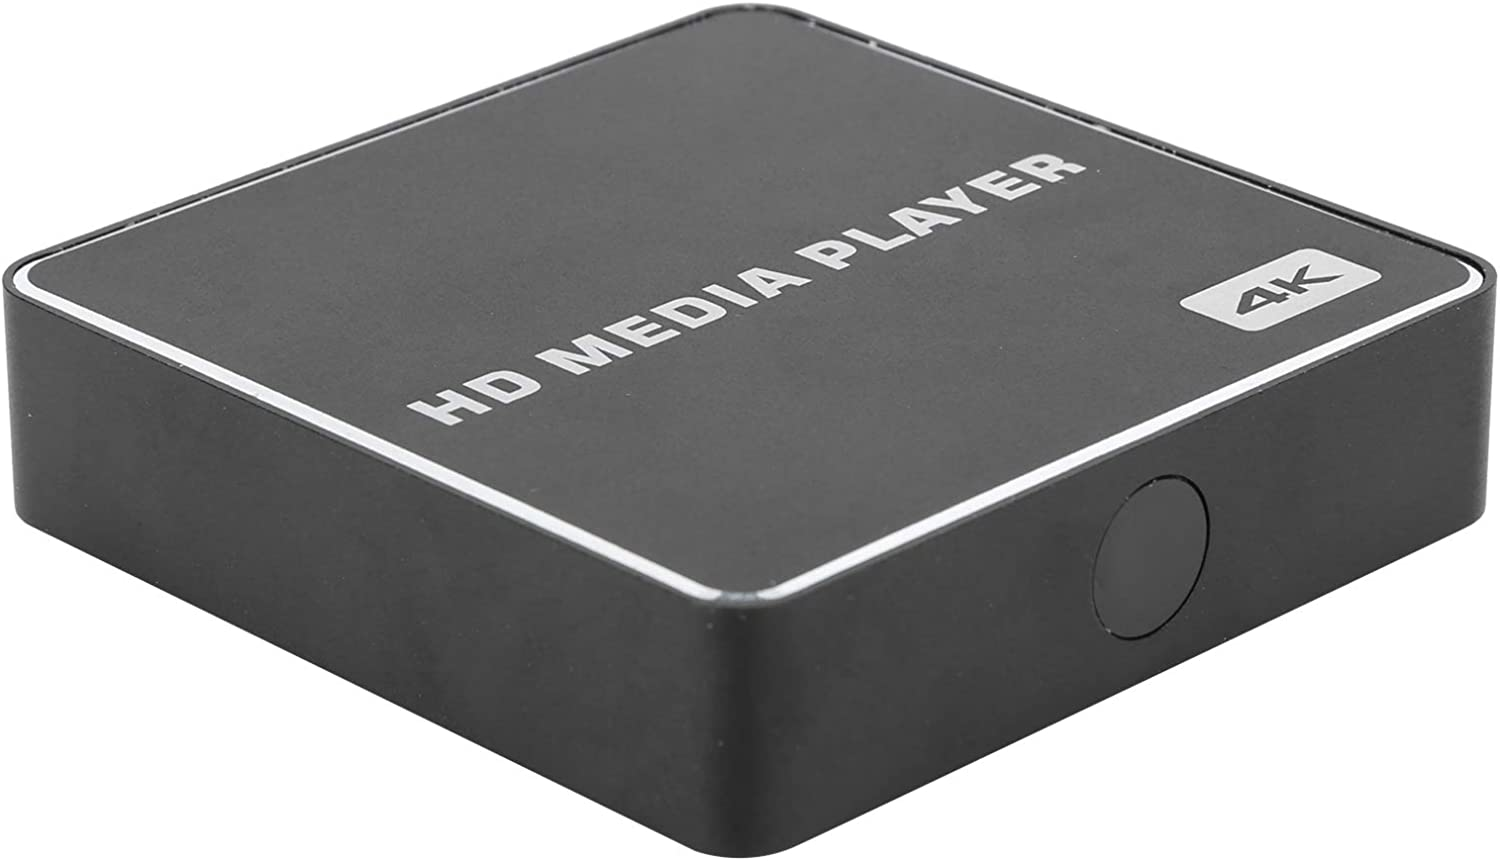 Wisoqu HDMI Media Player,Mini 1080p Full-HD Digital Media Player USB Media Box 4K Player HD Digital Media Player,90°/270°/180° Rotation Picture Output Function(US)